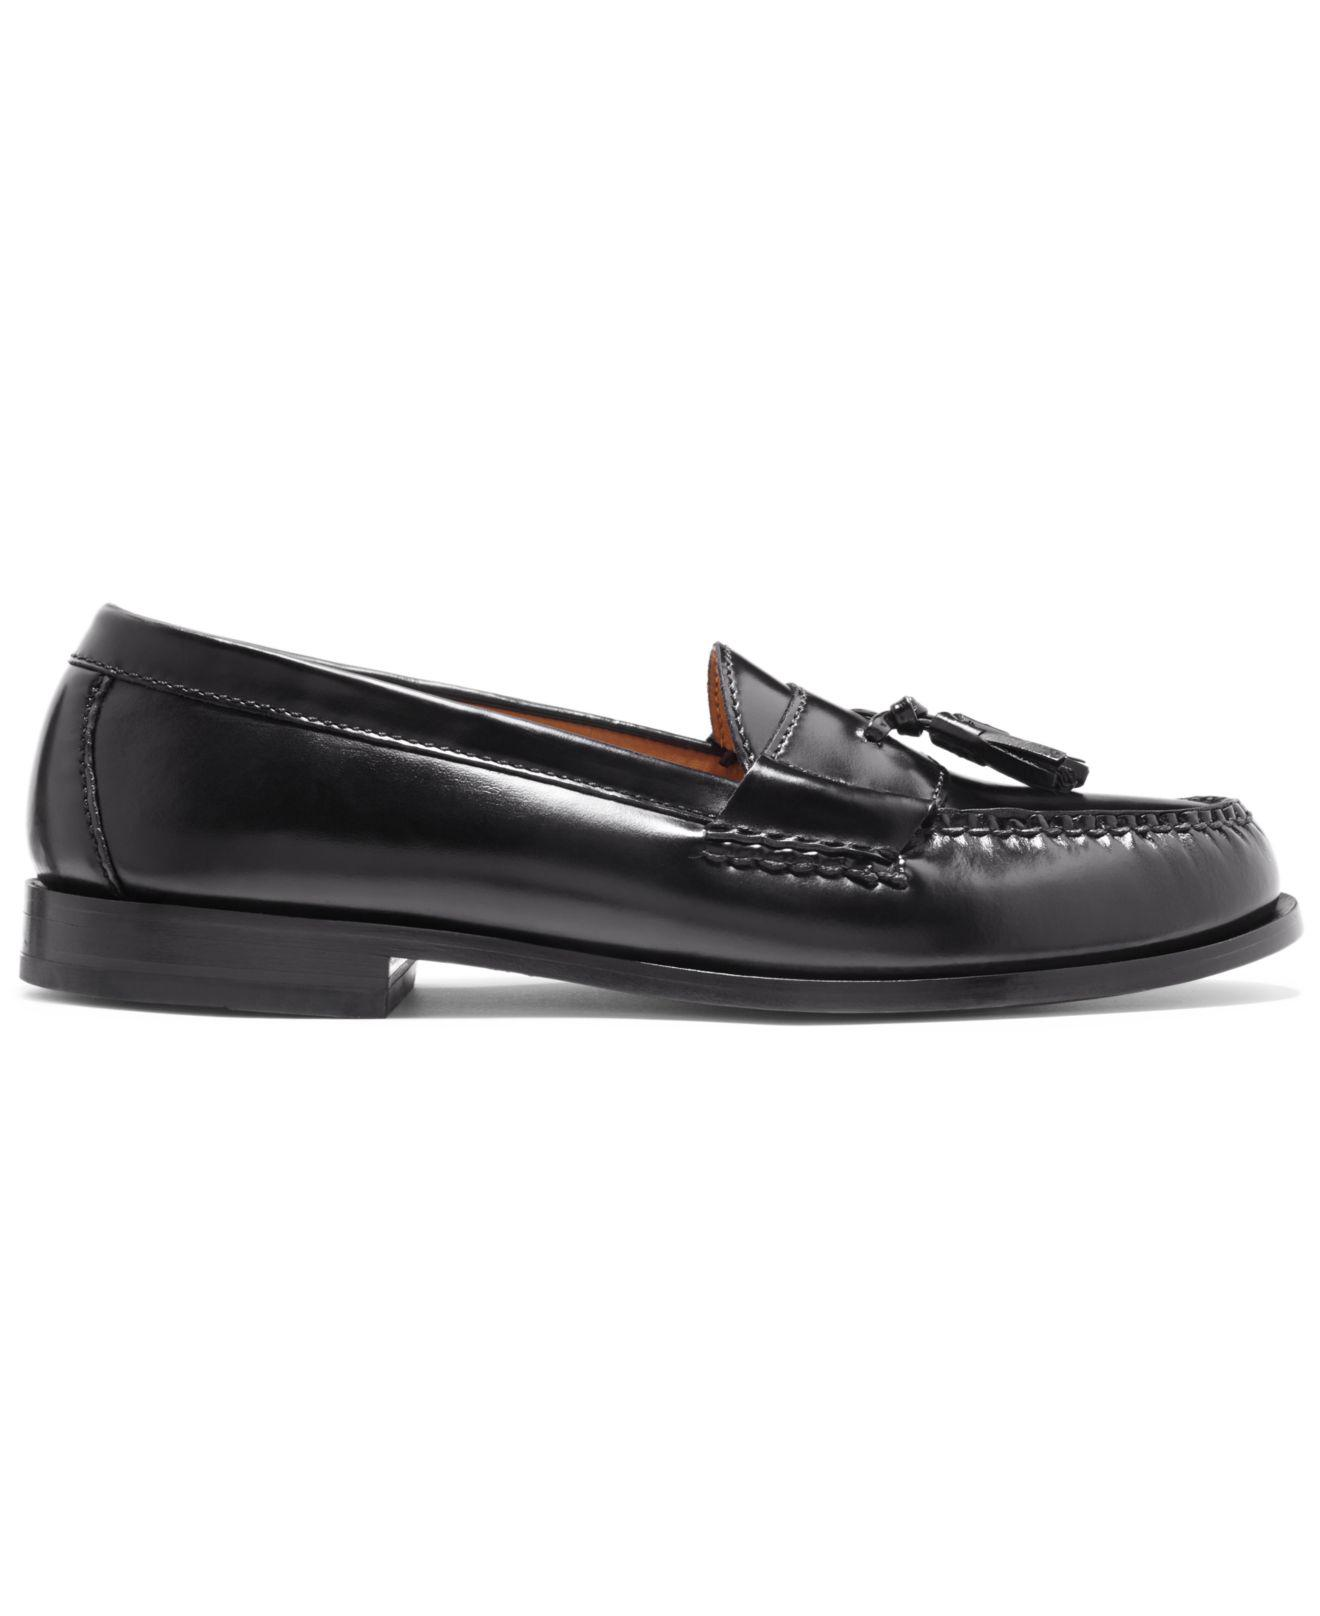 516503a4411 Lyst - Cole Haan Pinch Tasseled City Moccasins in Black for Men